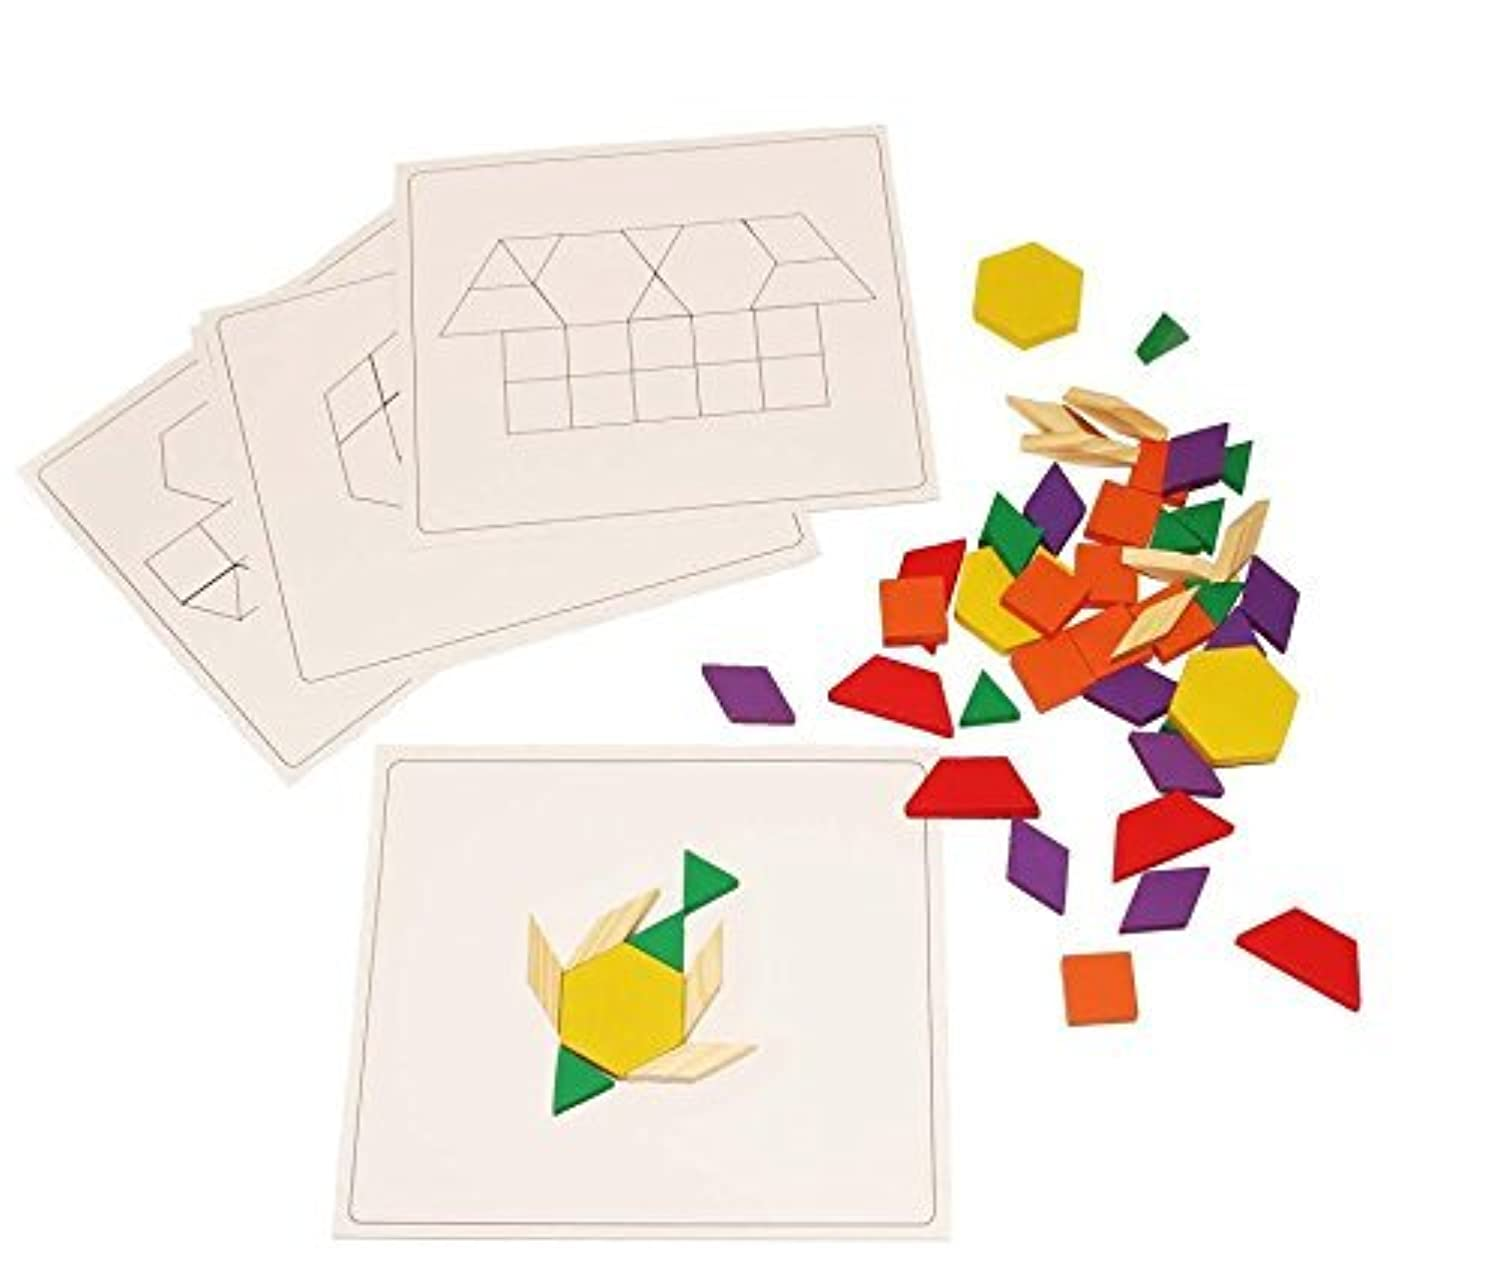 Dazzling Toys Wooden Blocks and Board Set, Pattern Boards Included. Set Contains 120 Wooden Blocks Great Party Gift.